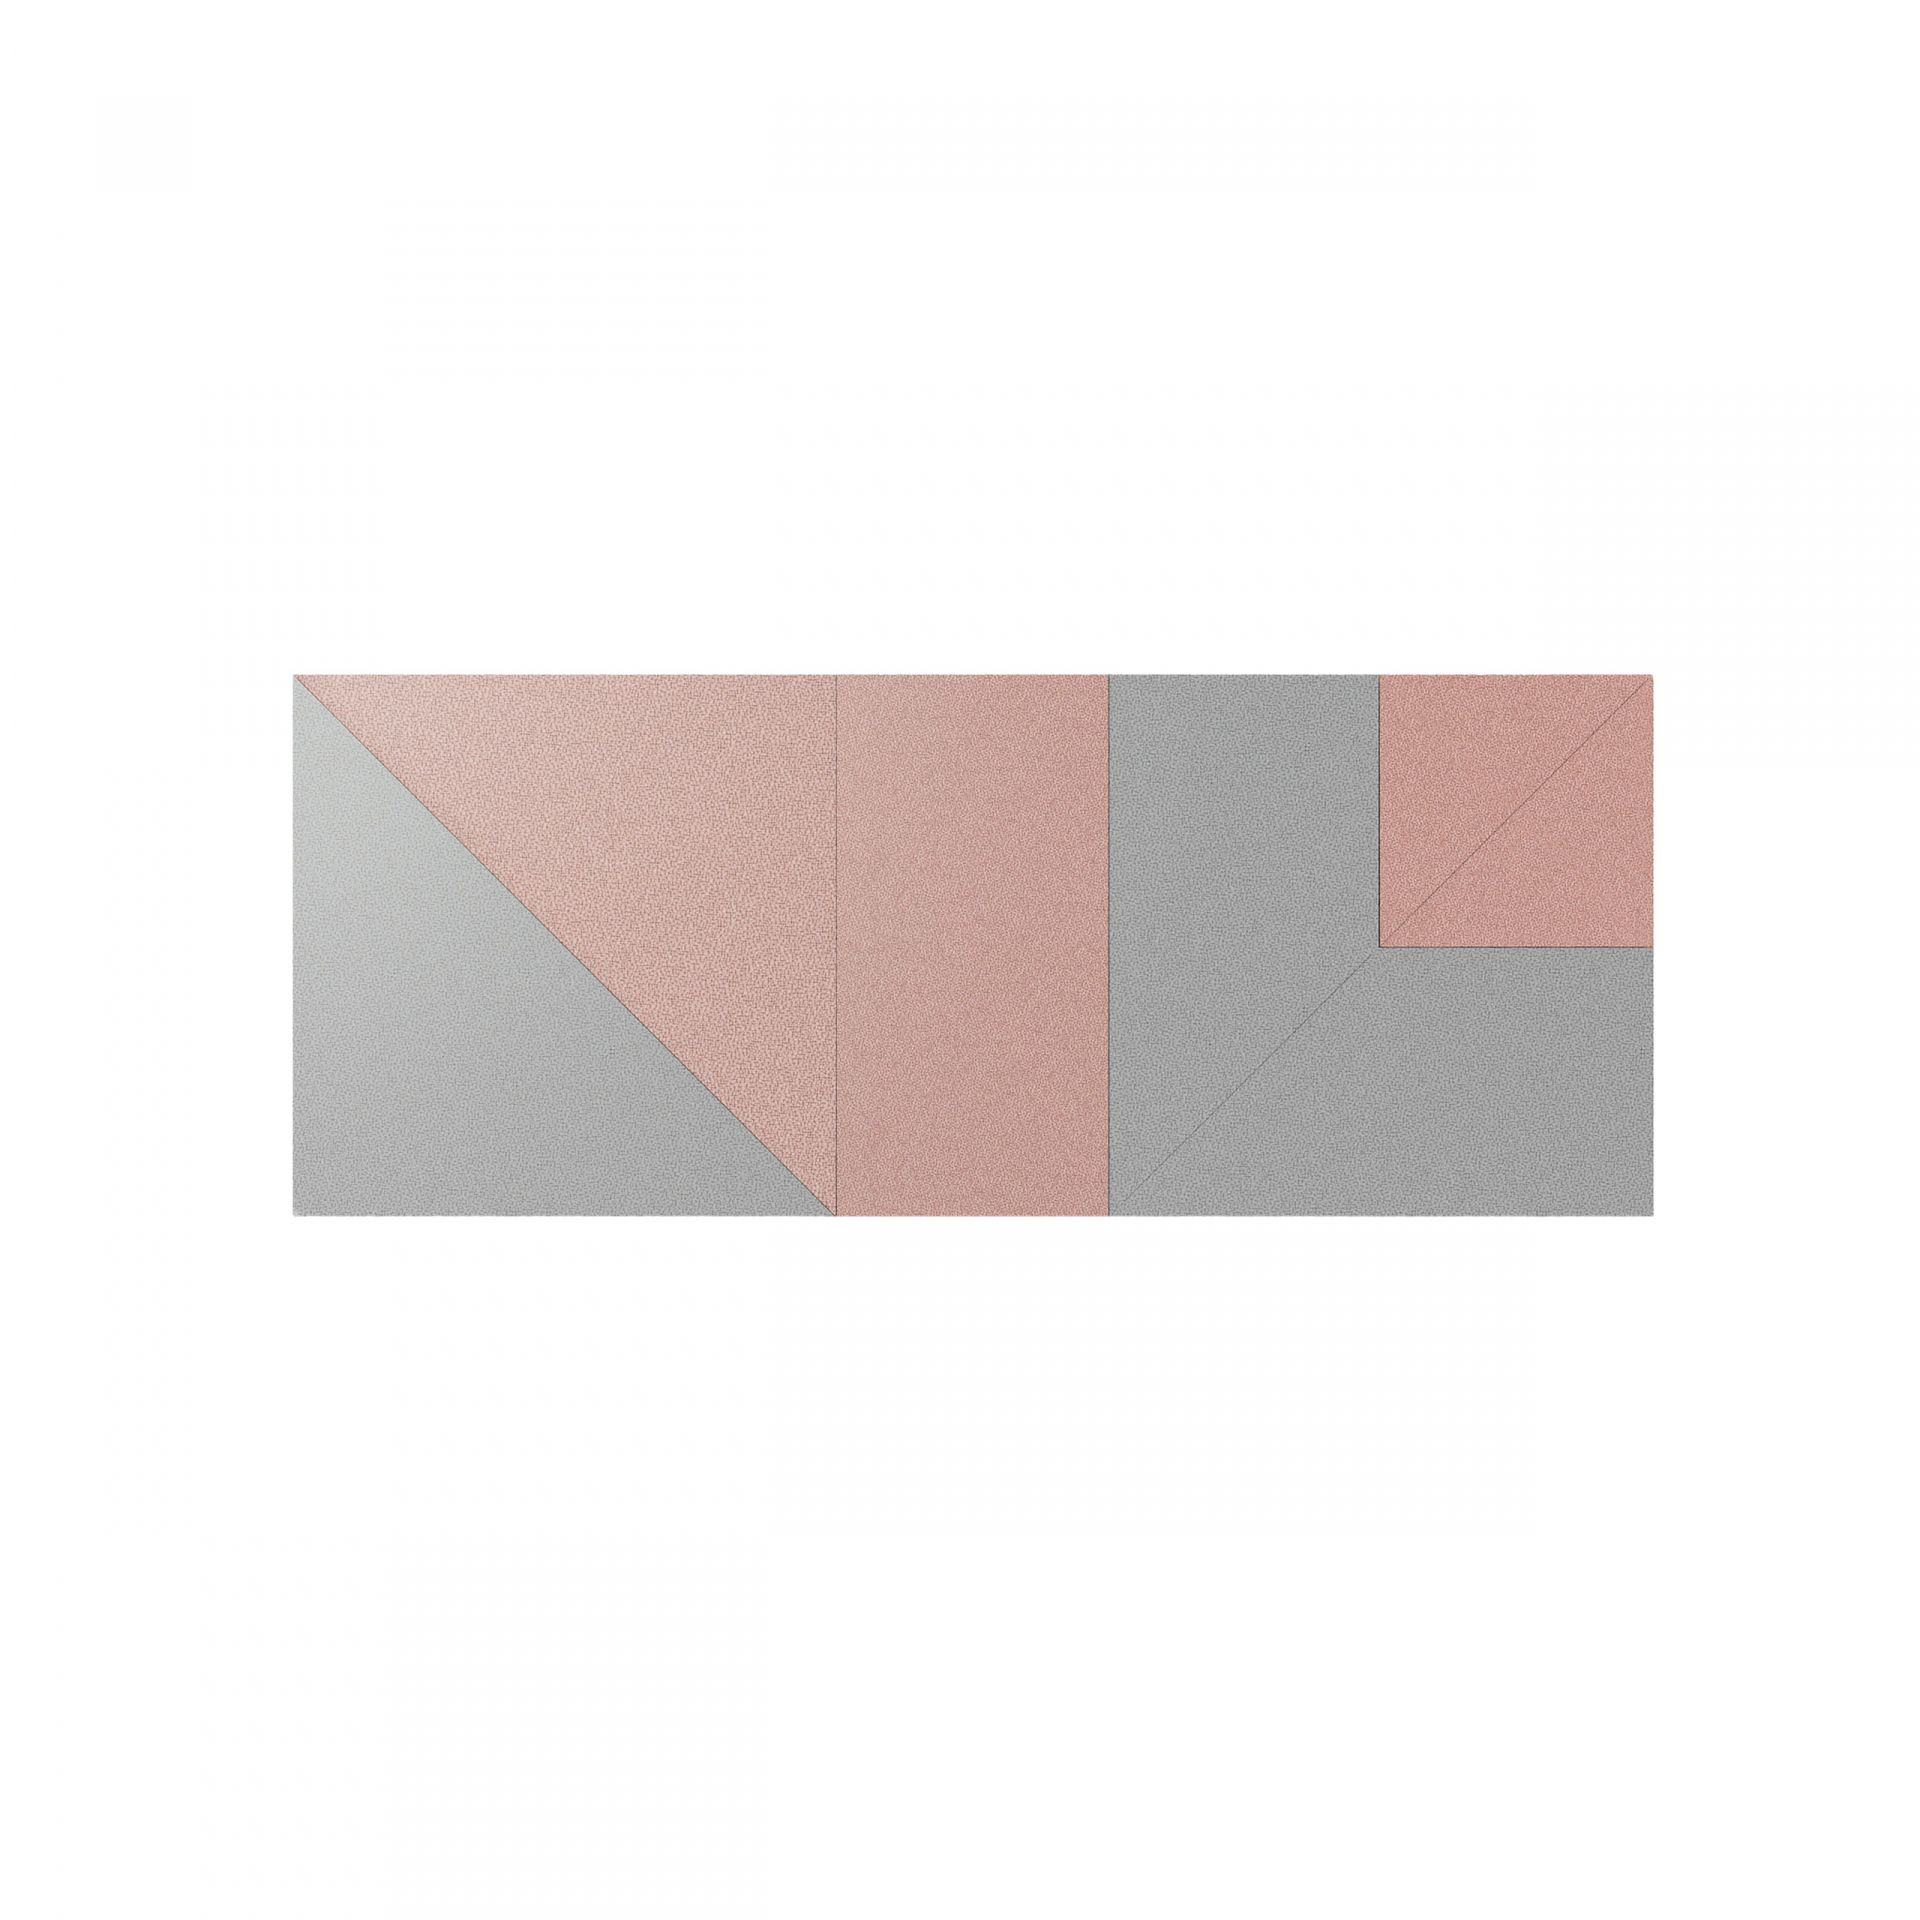 Kite Wall screen product image 2